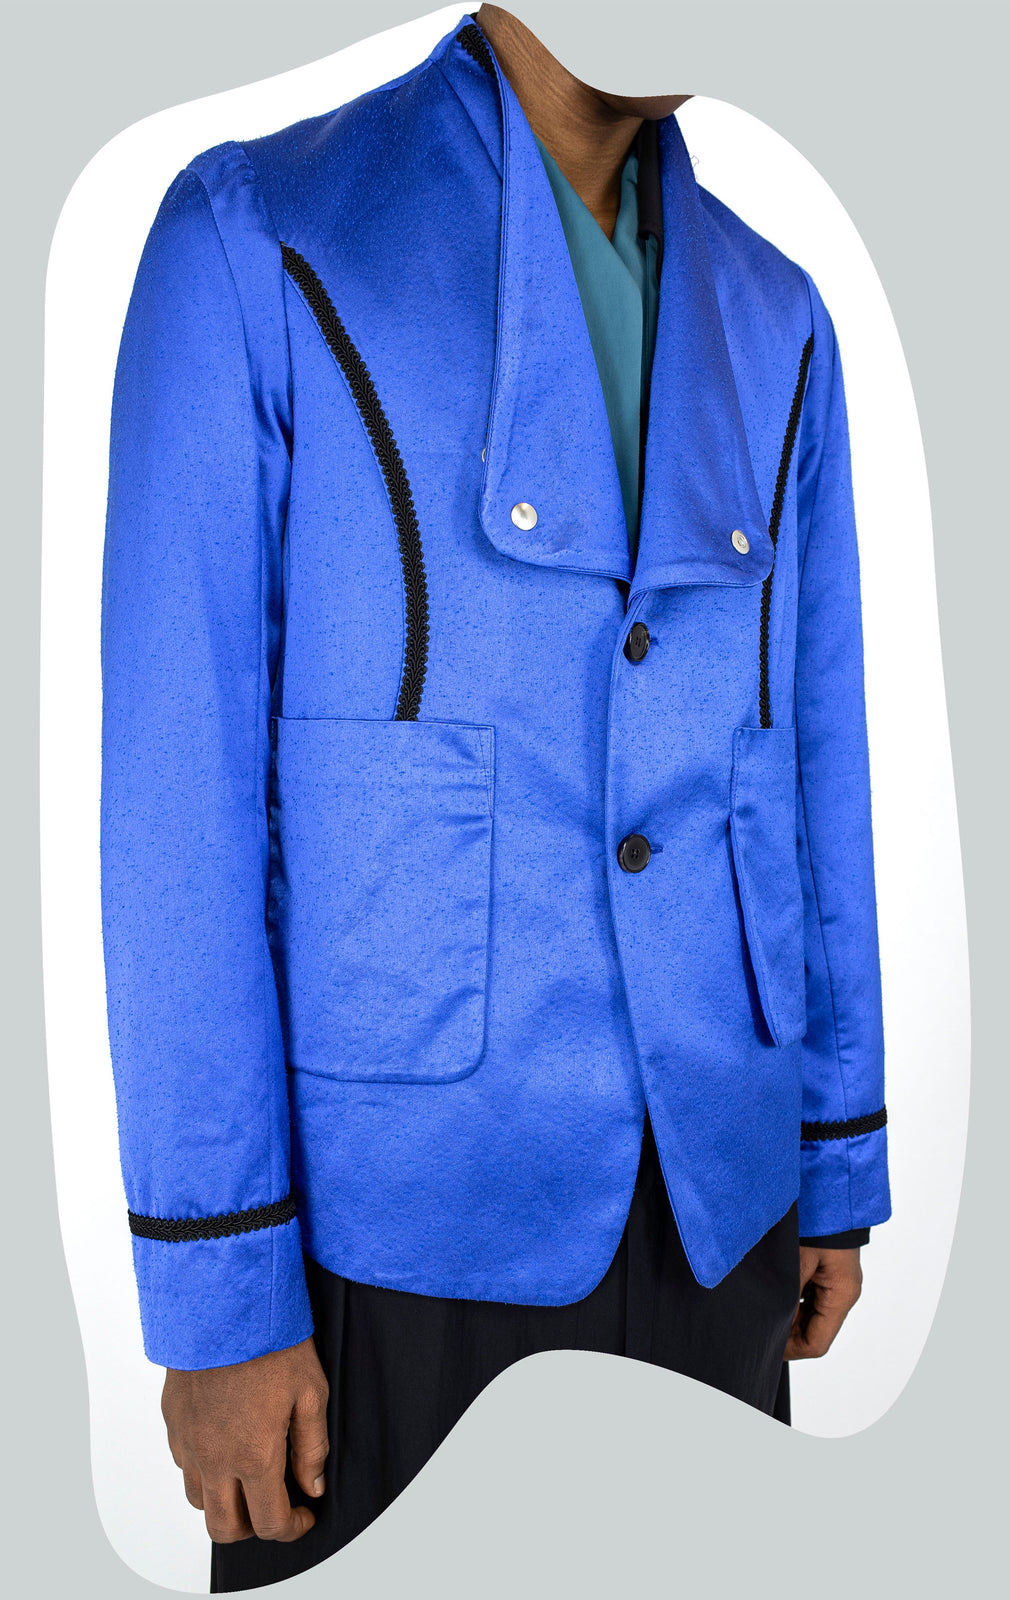 KIKO KOSTADINOV 00102021 ARCADIA TAILORED BLAZER BLUE